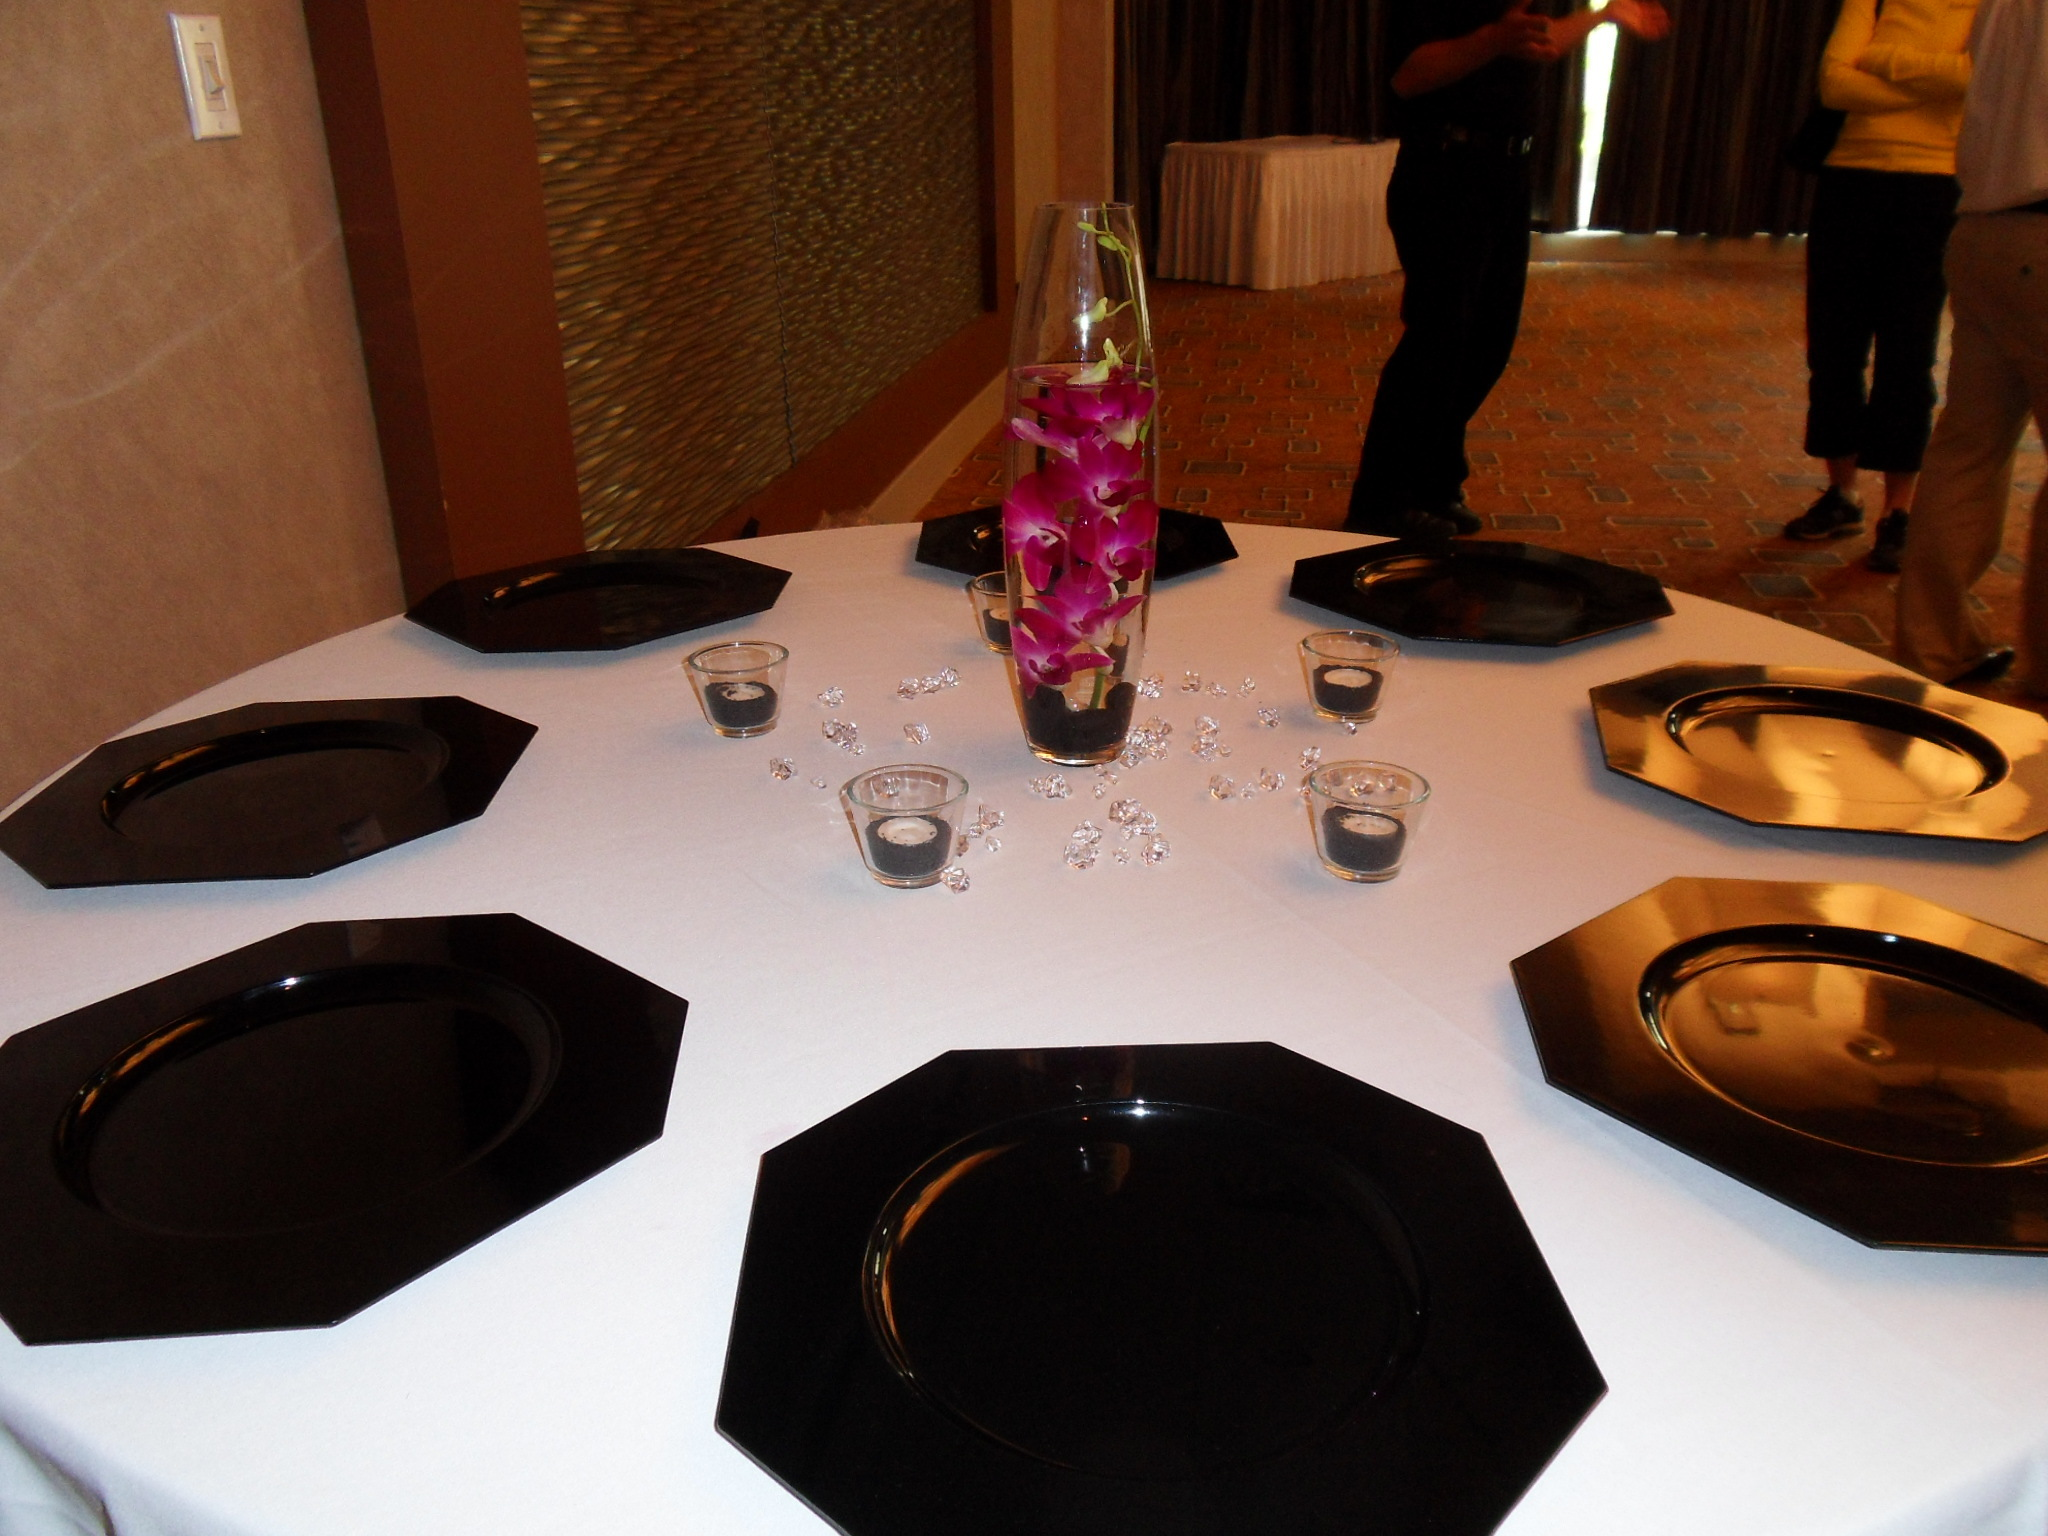 Registry, Place Settings, Centerpiece, Orchids, Plates, Charger